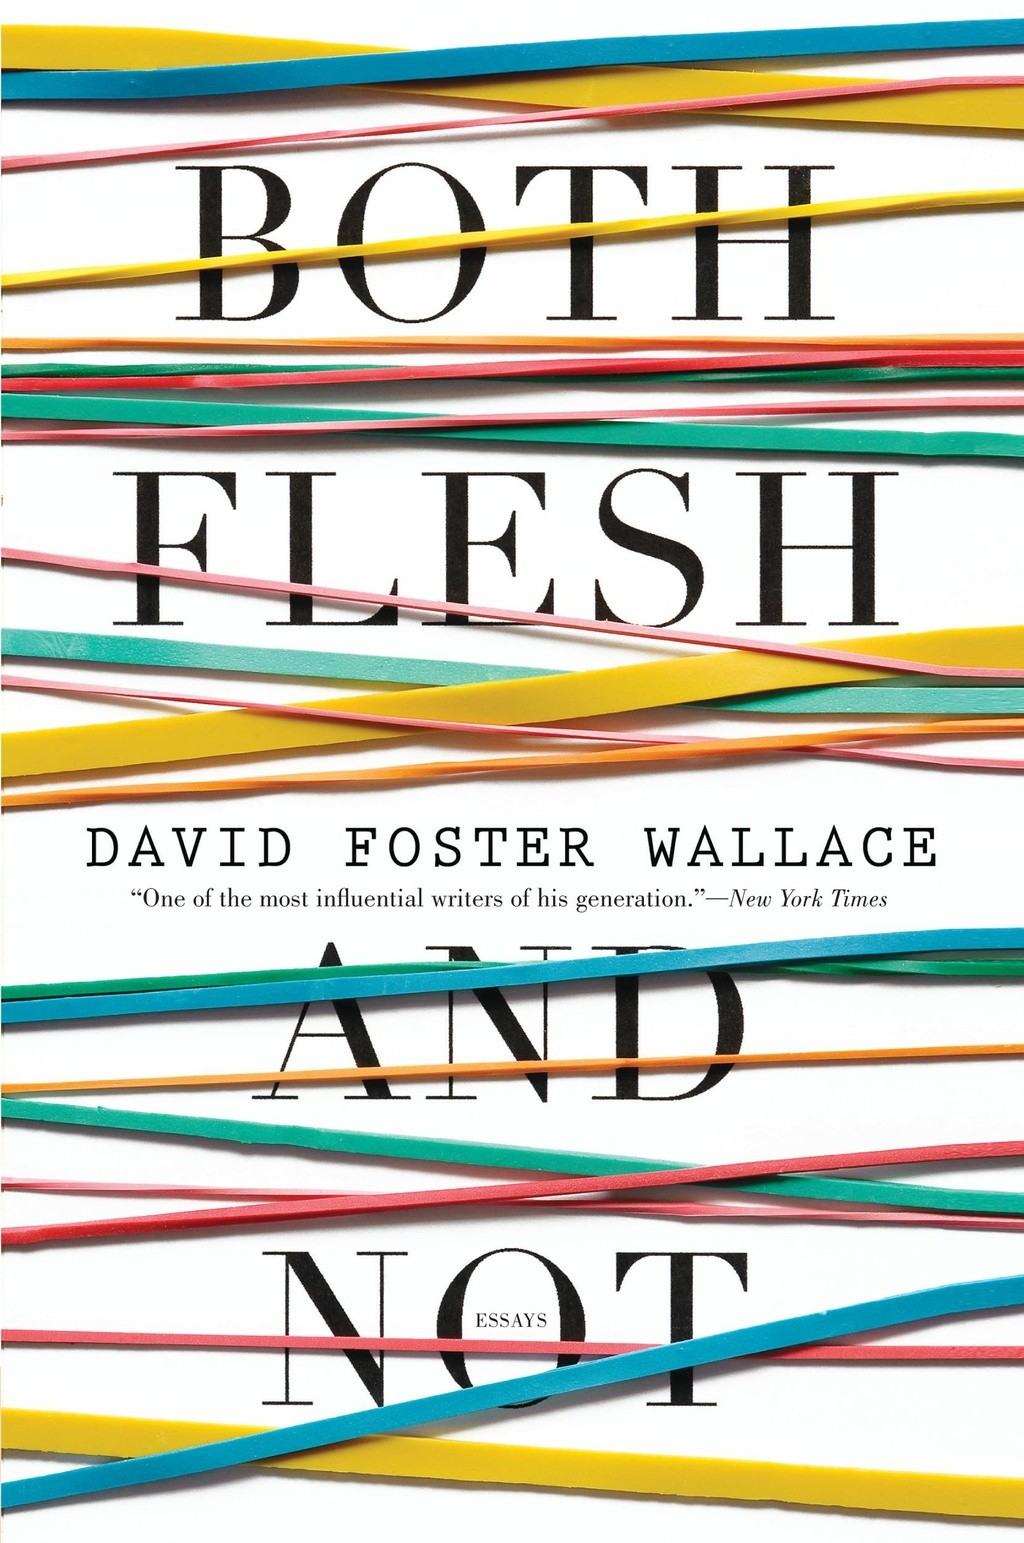 024 Essay Example David Foster Wallace Essays Formidable Amazon And The Long Thing New On Novels Cruise Ship Large